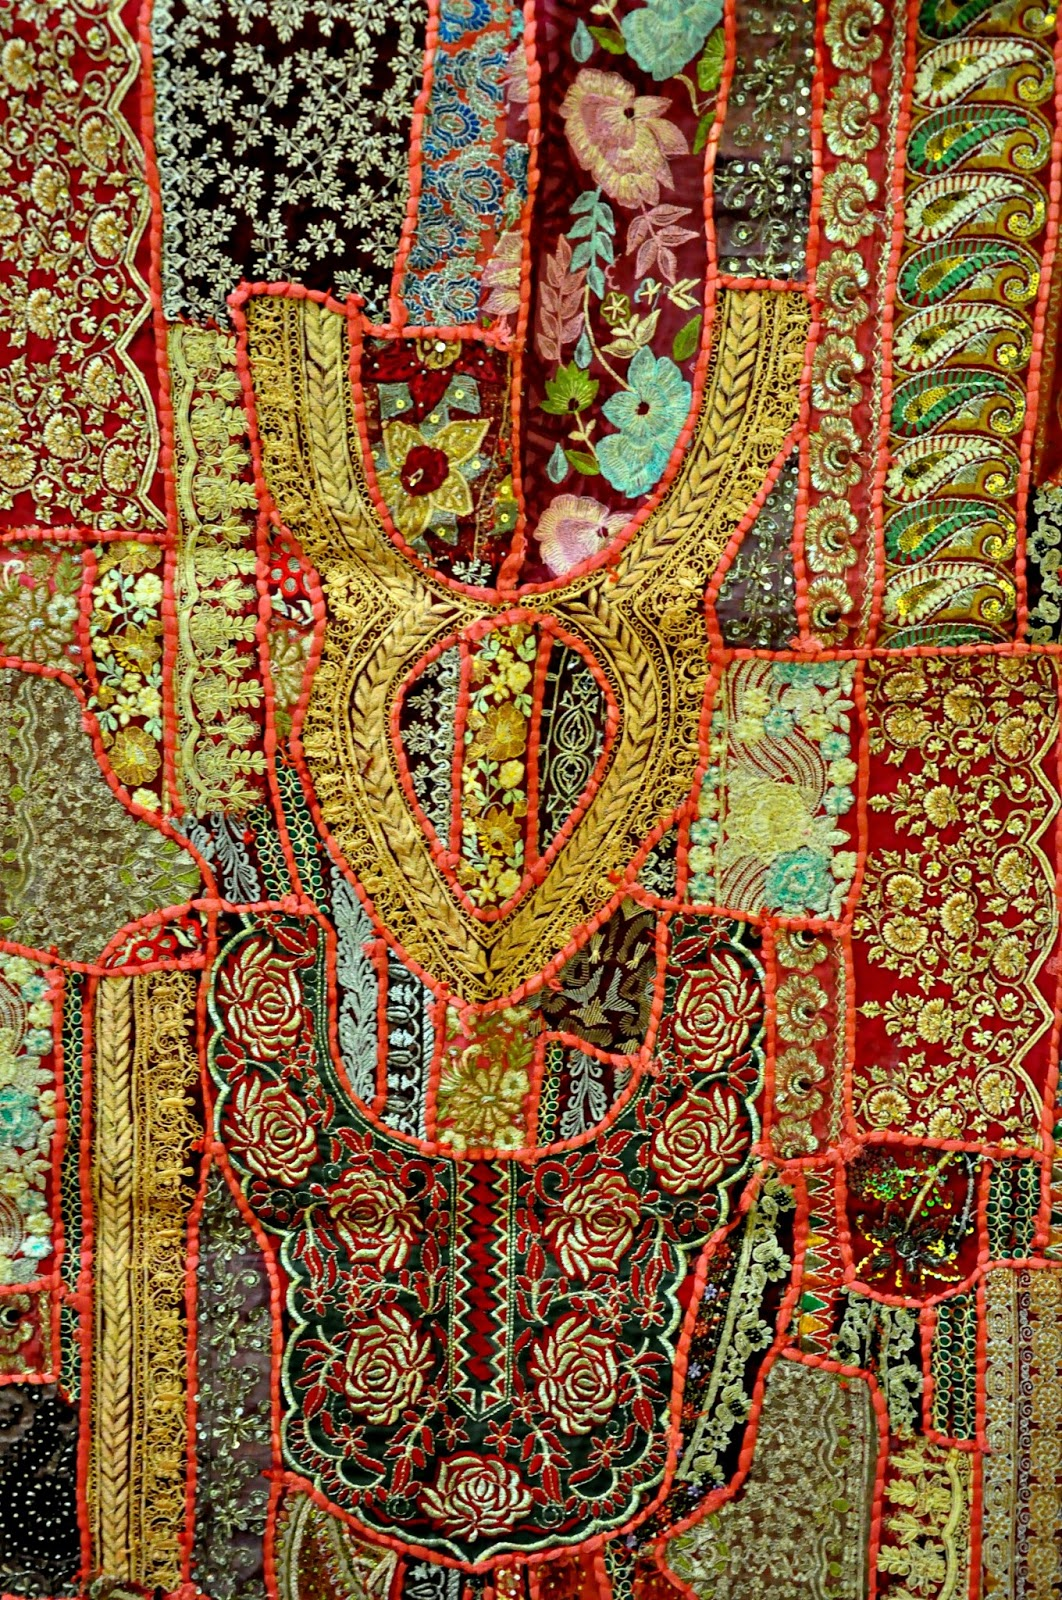 Jaipur Handloom Indian Vintage Handmade Patchwork Tapestry Wall Hanging Embroidered Table